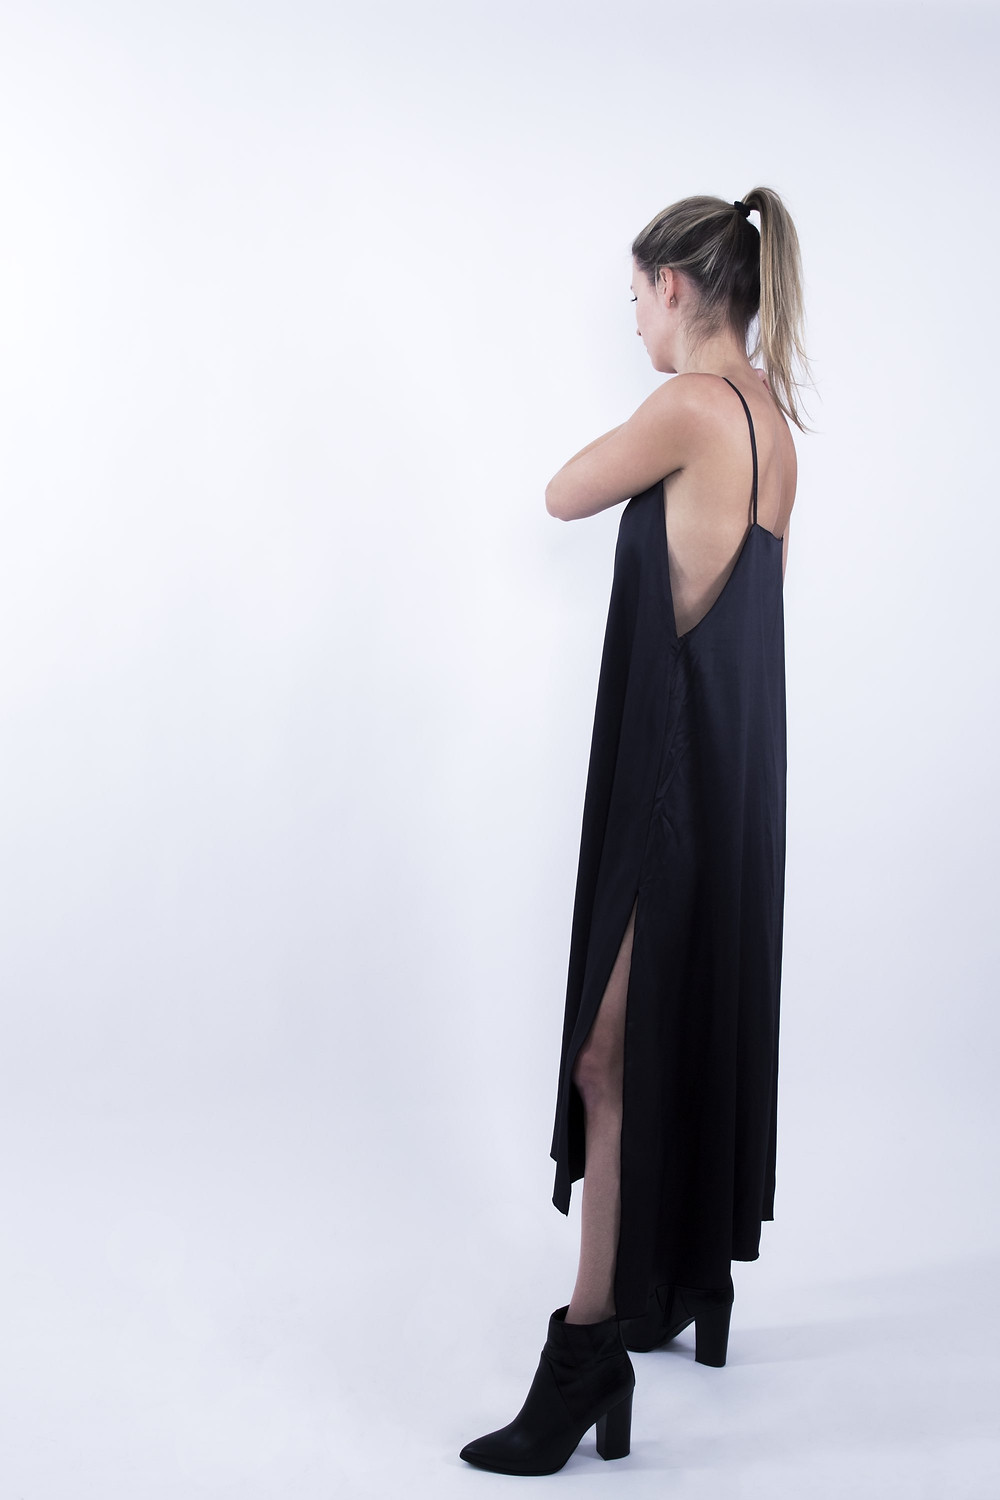 Model facing away from the camera wearing a black slip dress with a split on the side